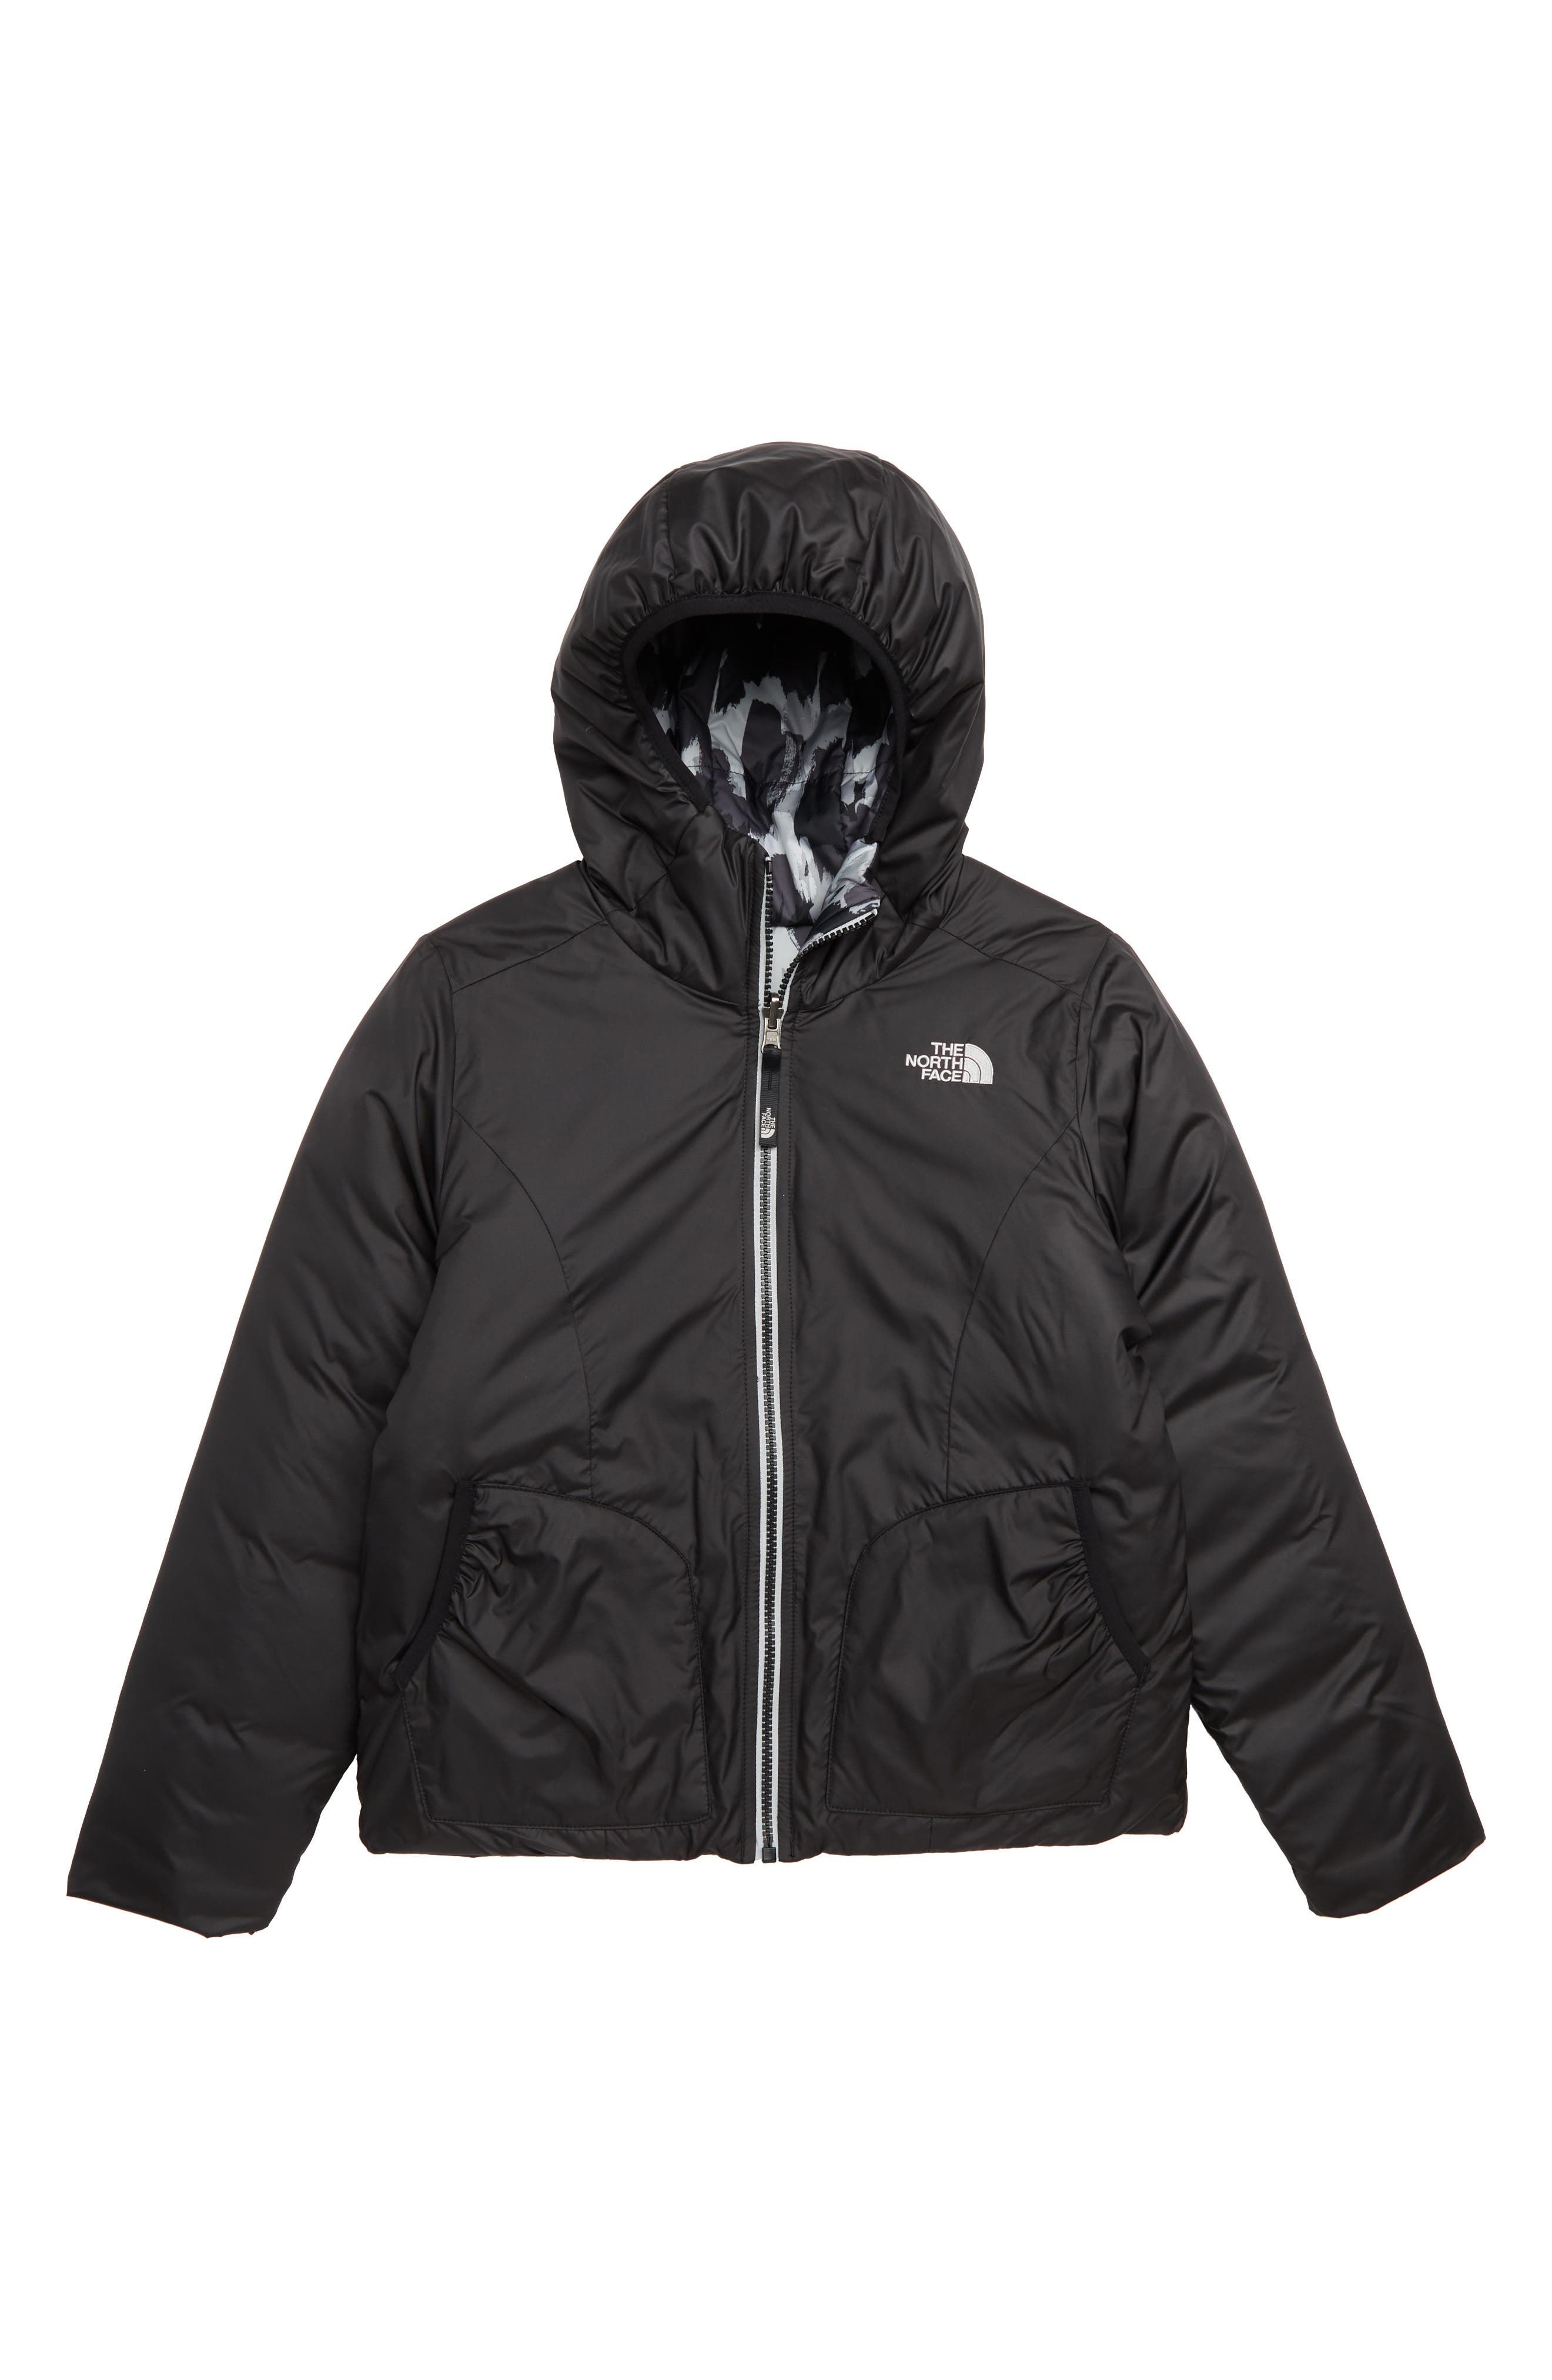 THE NORTH FACE Perrito Reversible Water-Repellent Hooded Jacket, Main, color, 001